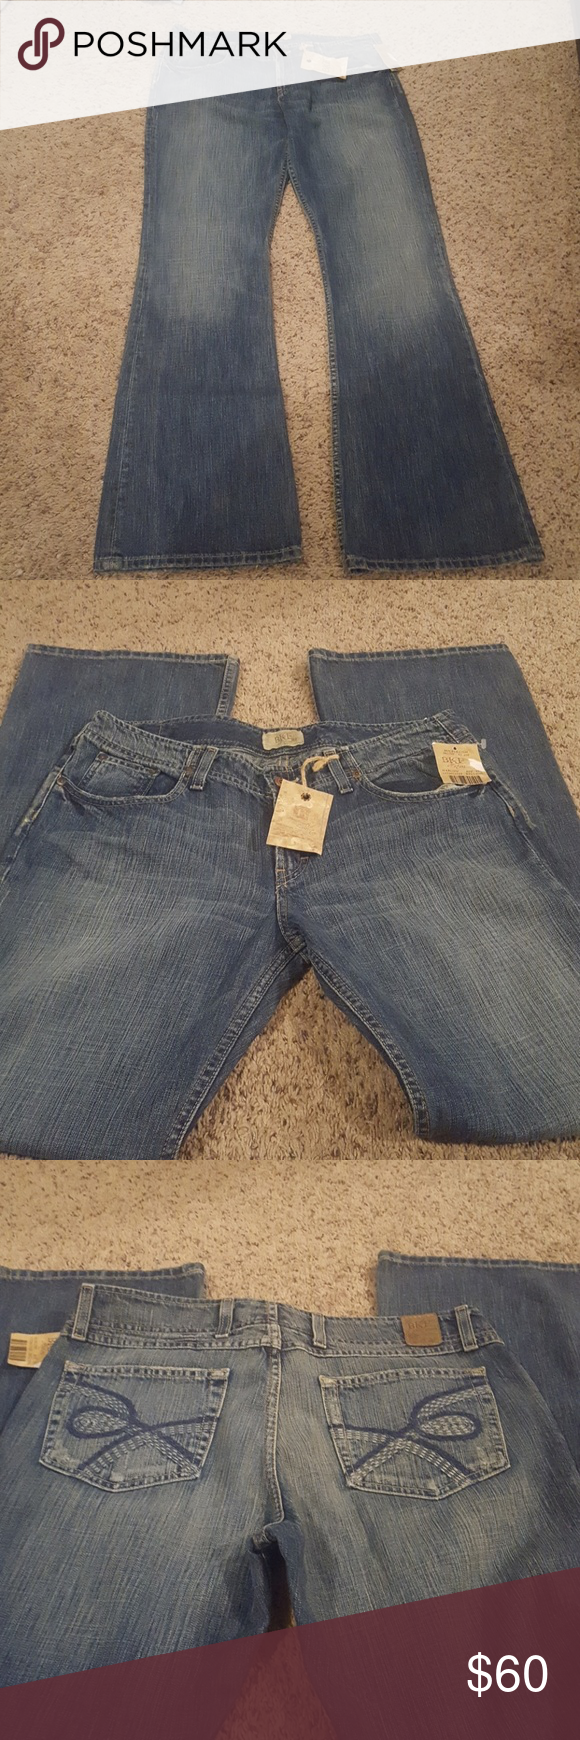 New Bke jeans size 33x33.5 New with tags Bke jeans style Harlow. Slight flare size 33x33.5. BKE Jeans Flare & Wide Leg